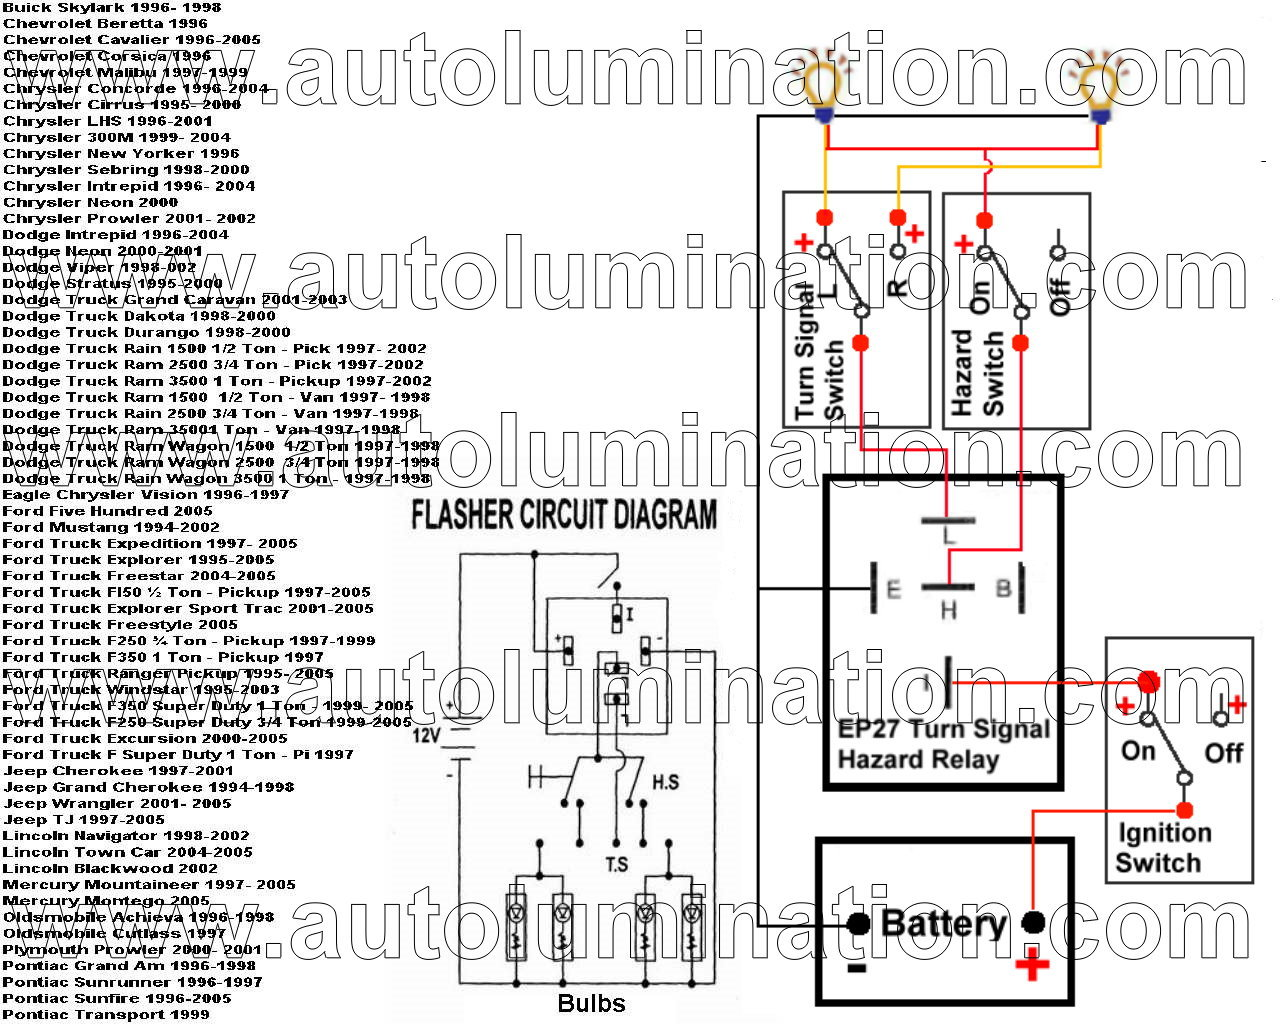 2002 dodge ram 1500 ignition switch wiring diagram 2002 1996 sebring ignition switch wiring diagram color code 1996 auto on 2002 dodge ram 1500 ignition